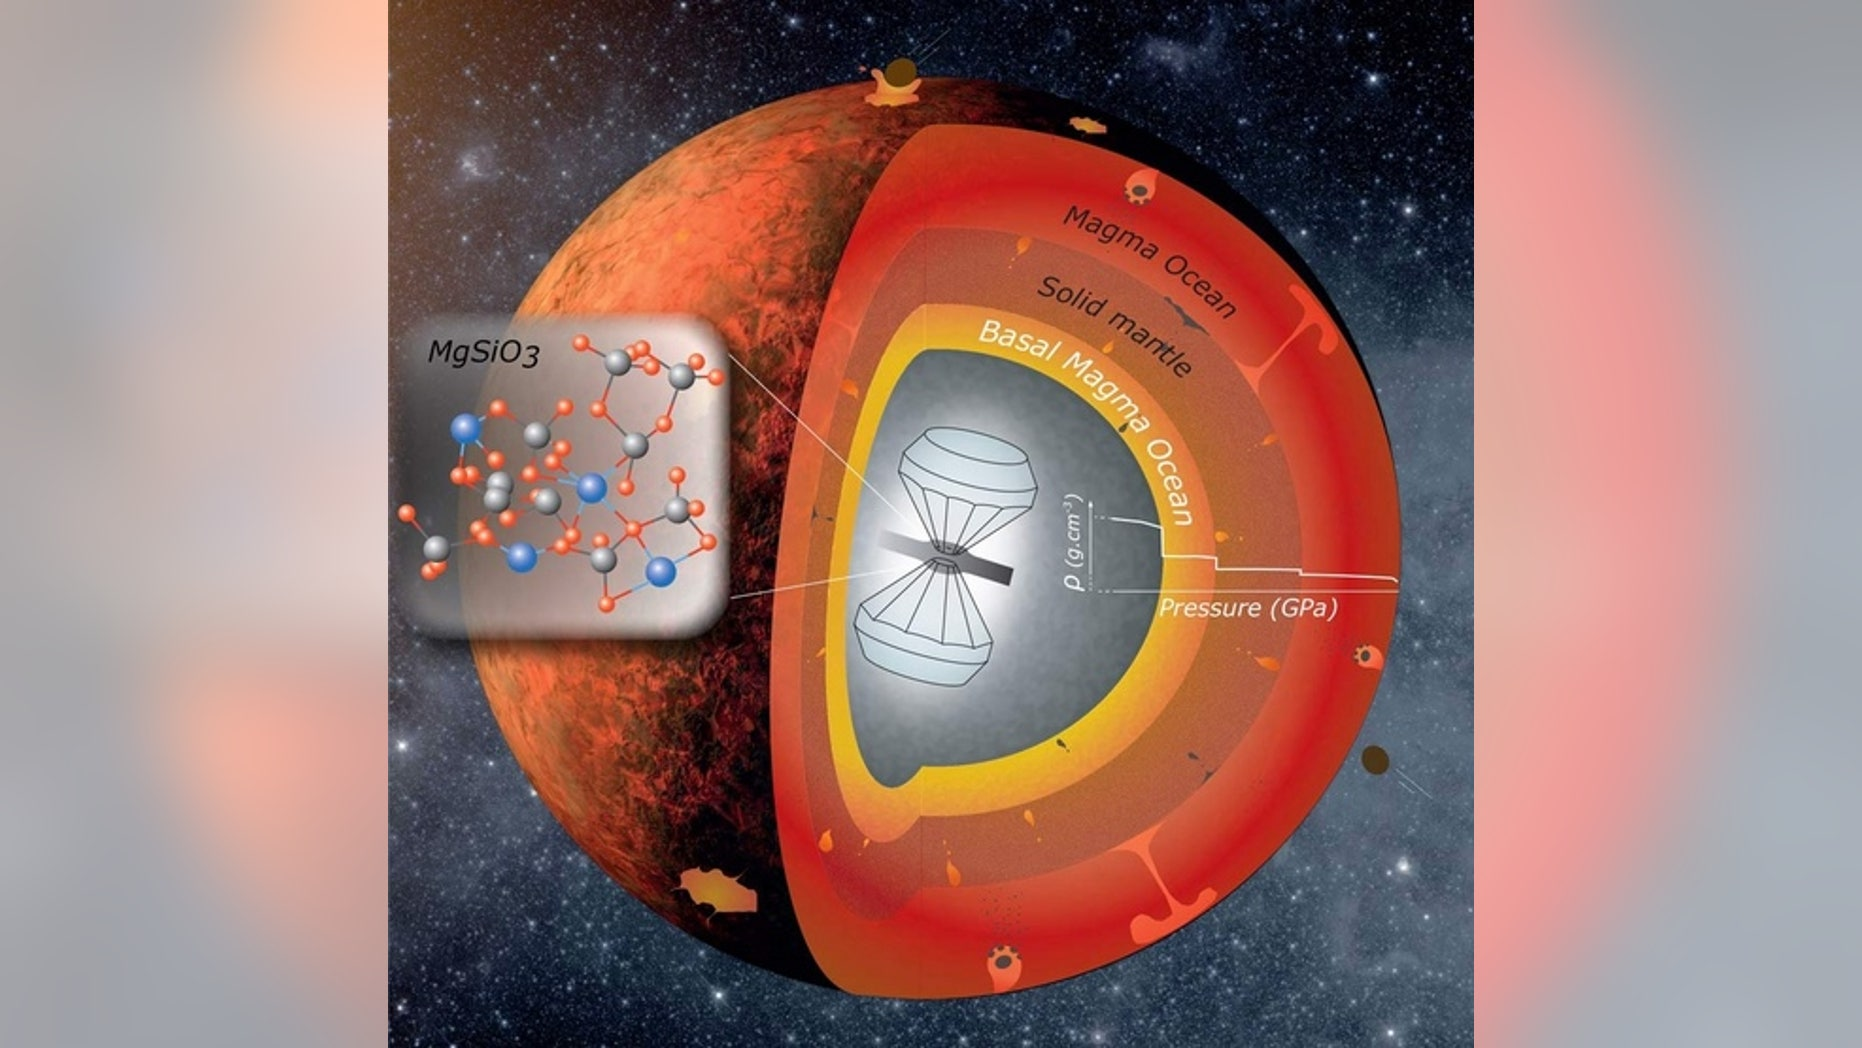 As far back as 4.5 billion years ago, a dense magma ocean may have formed at the top of Earth's core.